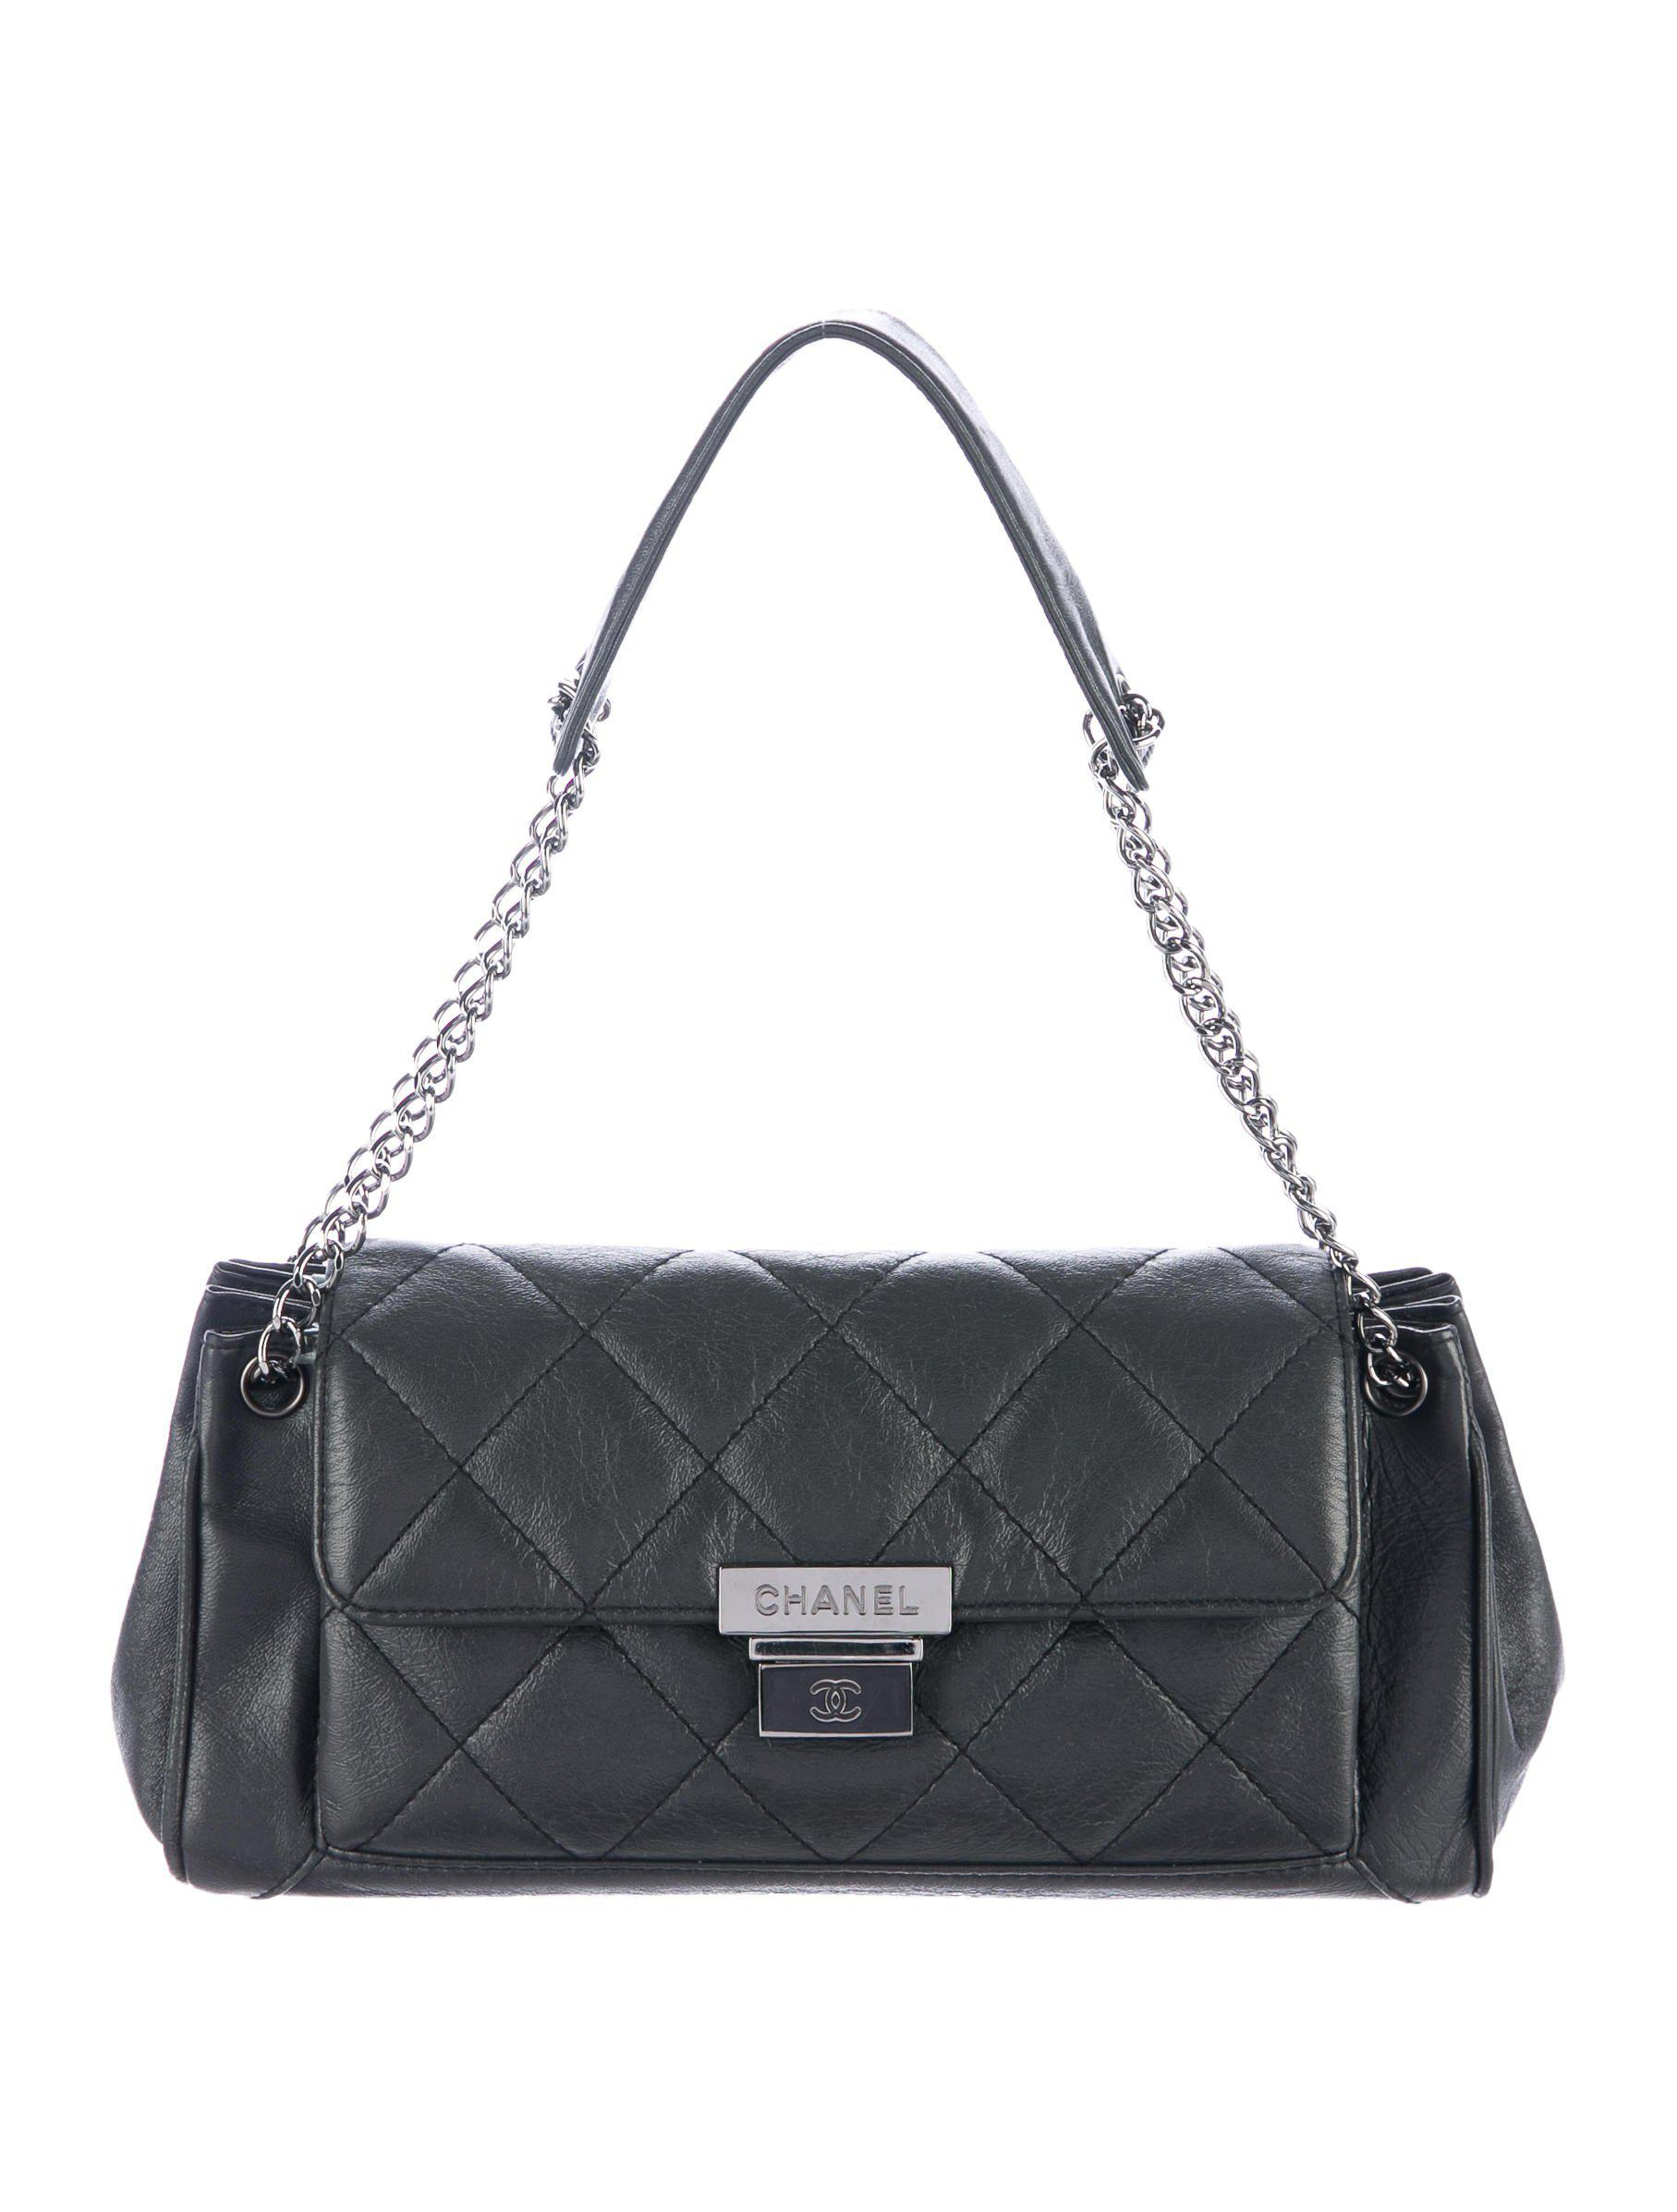 d61343b1f022d1 Chanel - Metallic E/w Lambskin Accordion Flap Bag - Lyst. View Fullscreen